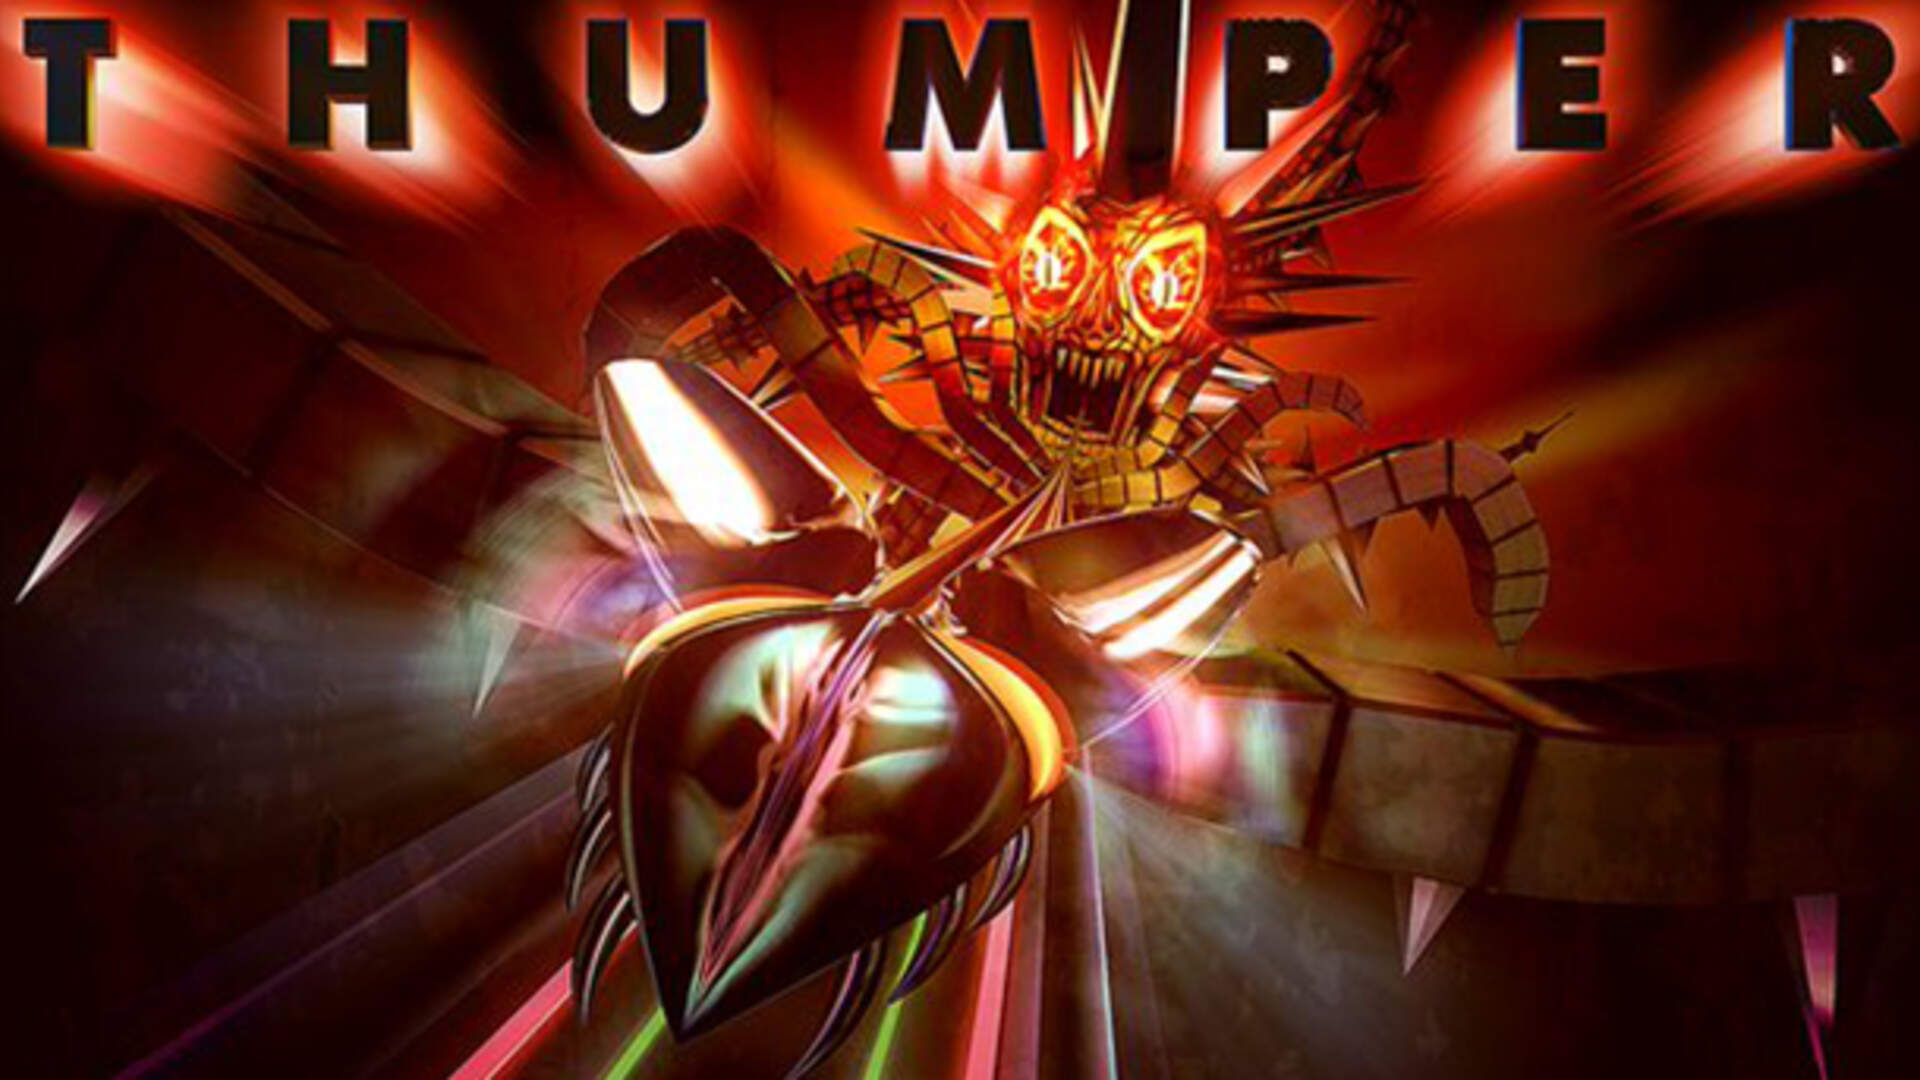 Get Ready for Rumble Violence: Thumper Is Coming to Nintendo Switch